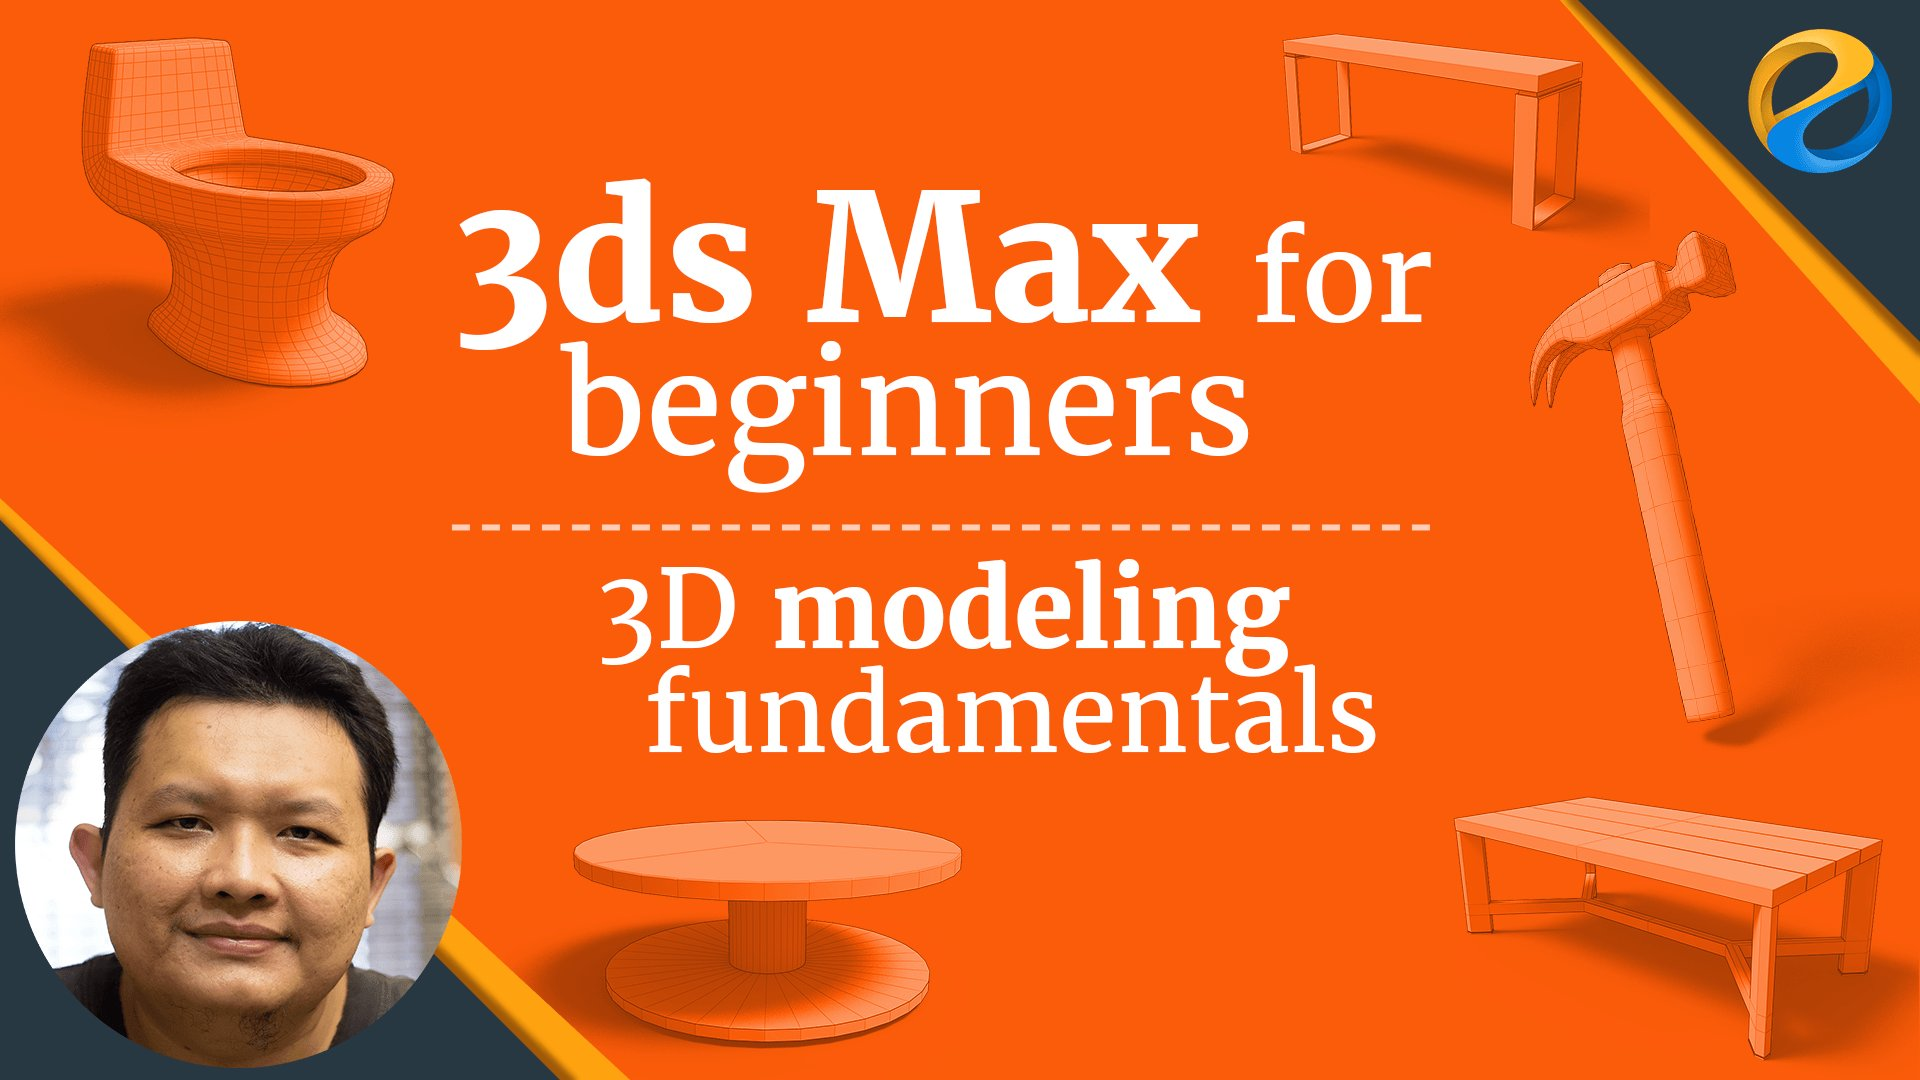 3ds max for beginners 3d modeling fundamentals widhi for 3d max lessons for beginners